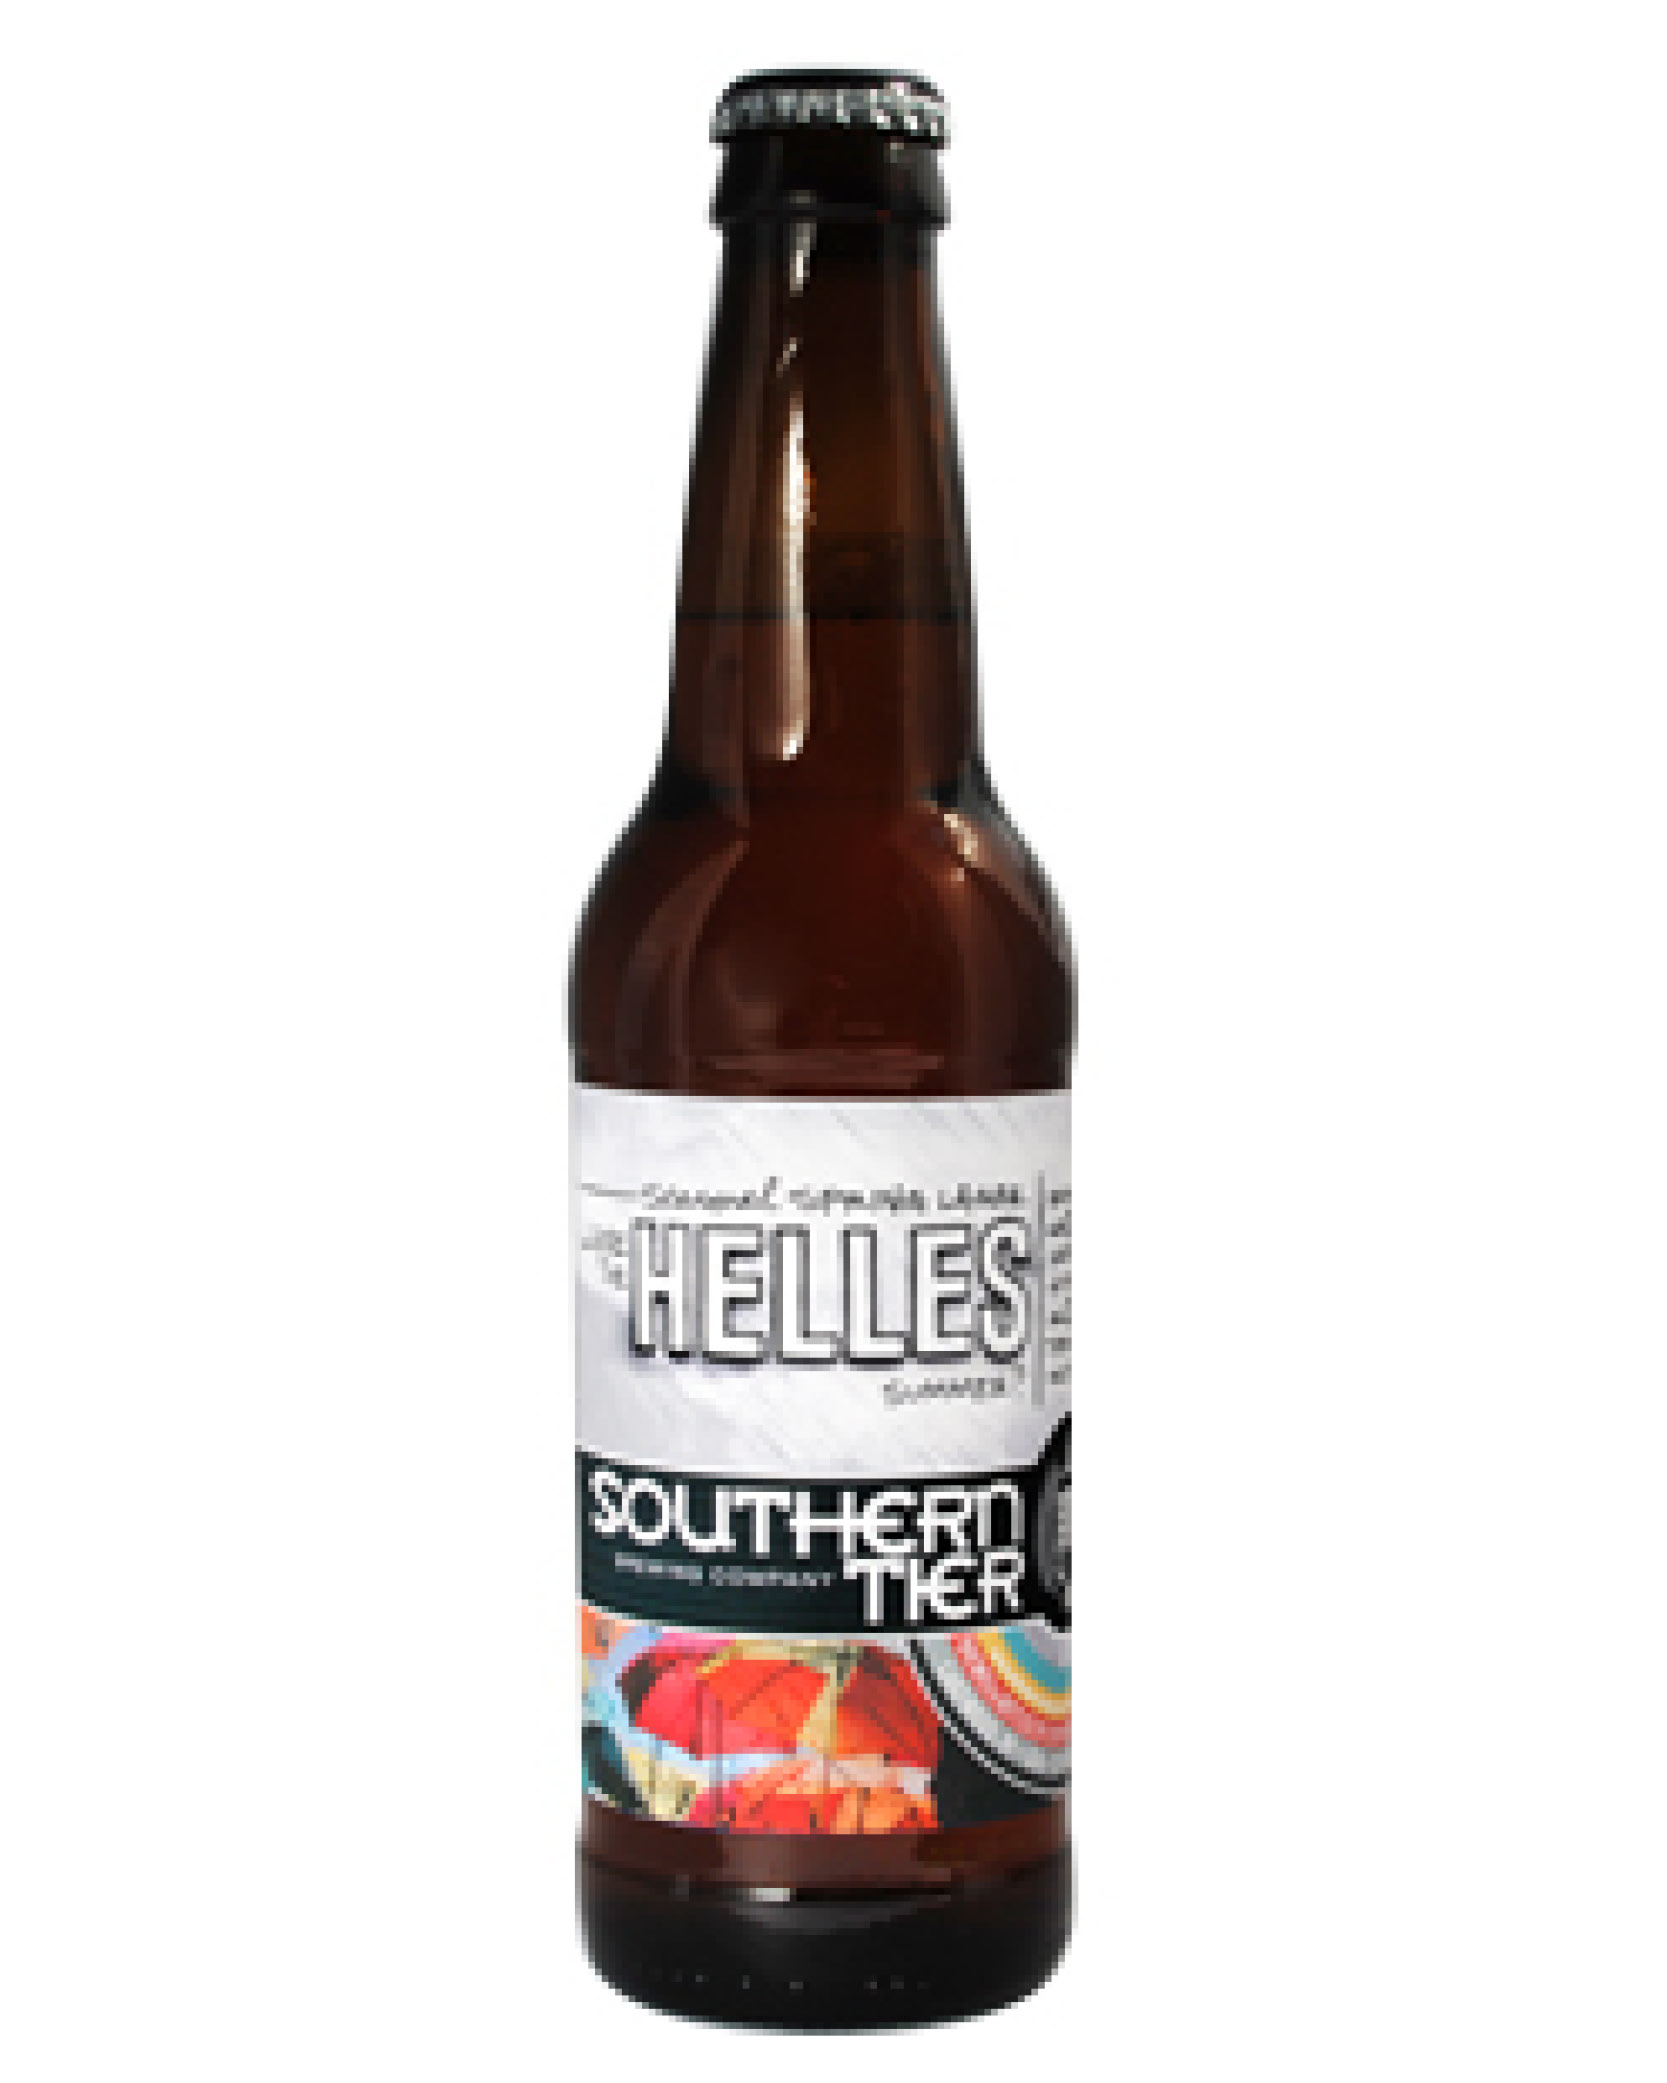 Southern Tier Helles